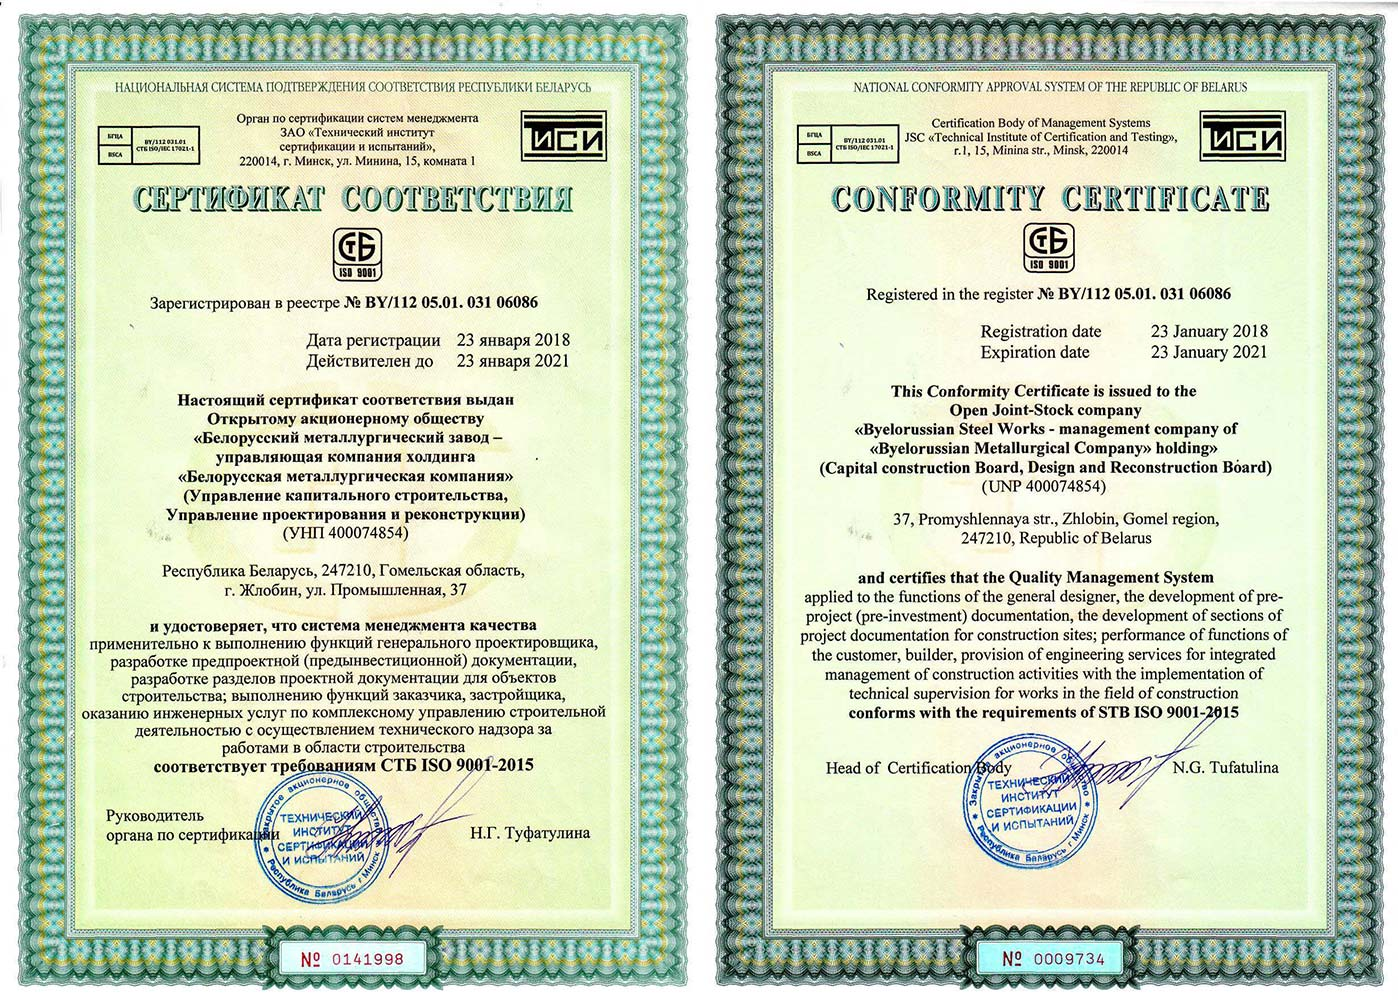 Certificate № TIC 15 100 18194 (TUV Thuringen e.V.) of QMS conformity with the requirements of international standard ISO 50001:2011 to design, develop and produce concast billet, rolled product, wire rod, seamless pipes, steel cord, wire and steel fiber